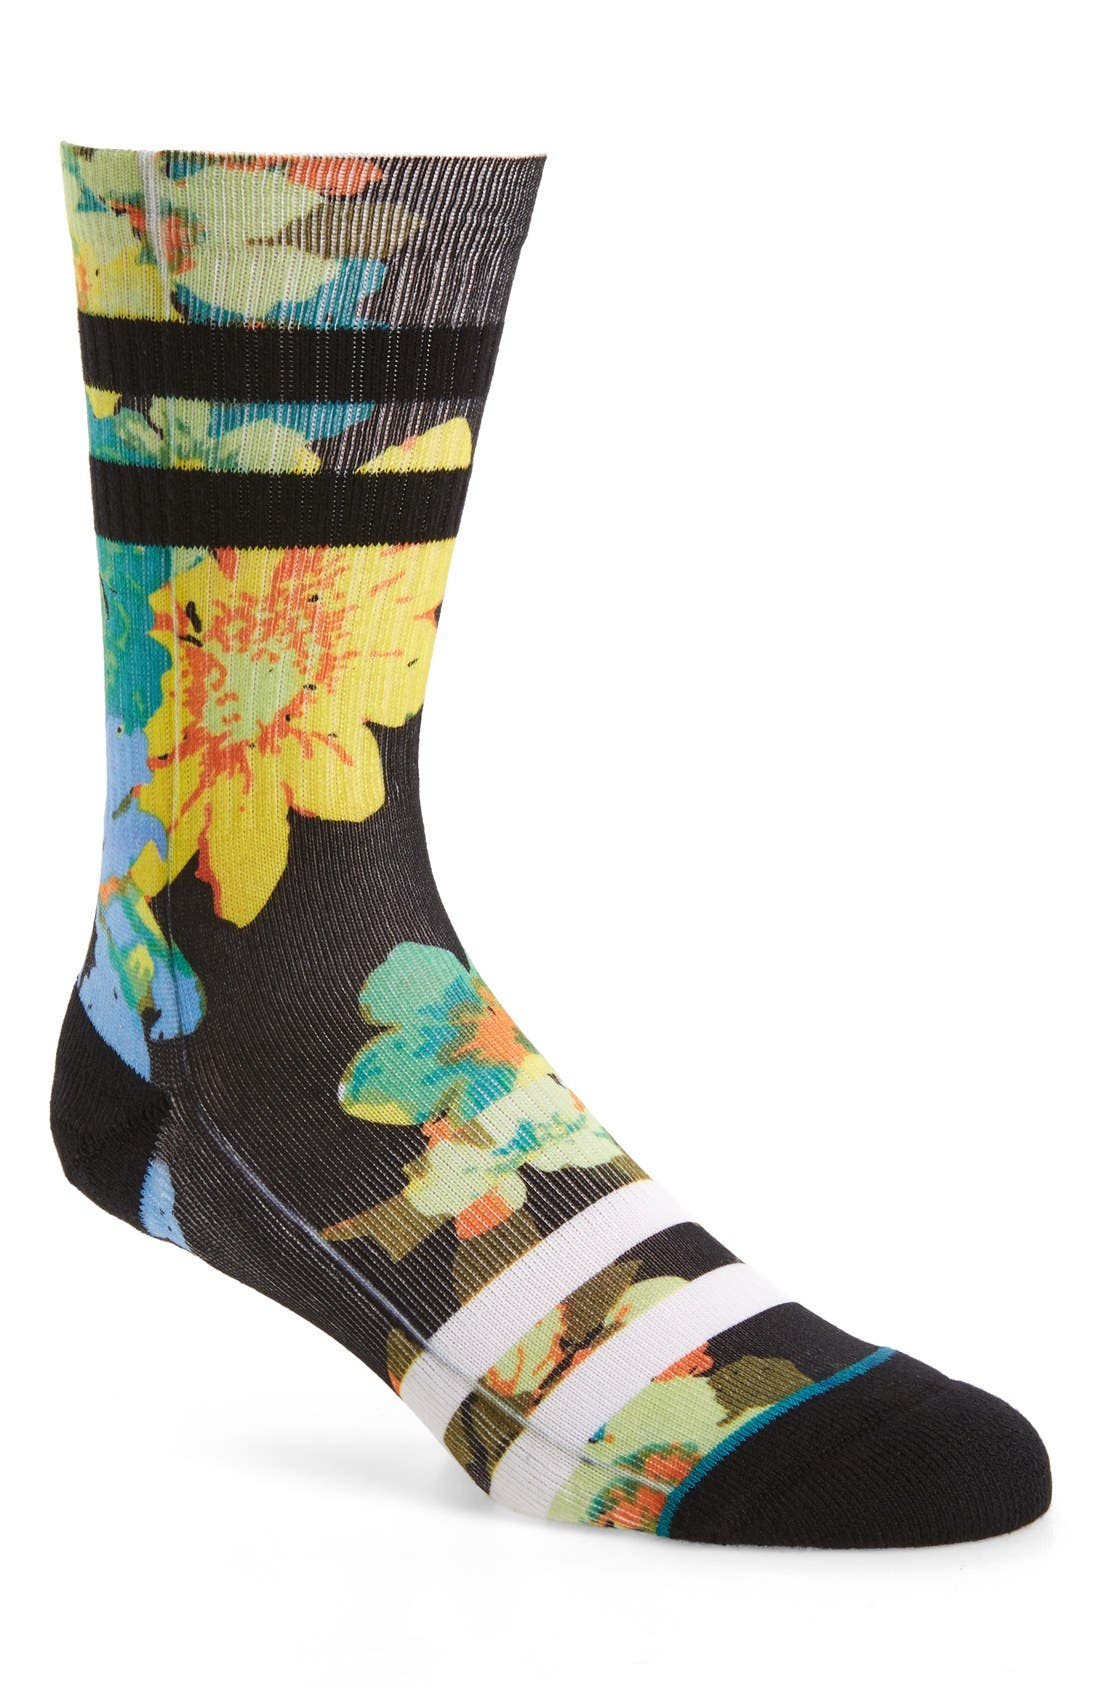 Alternate Image 1 Selected - Stance Corsage Classic Crew Socks